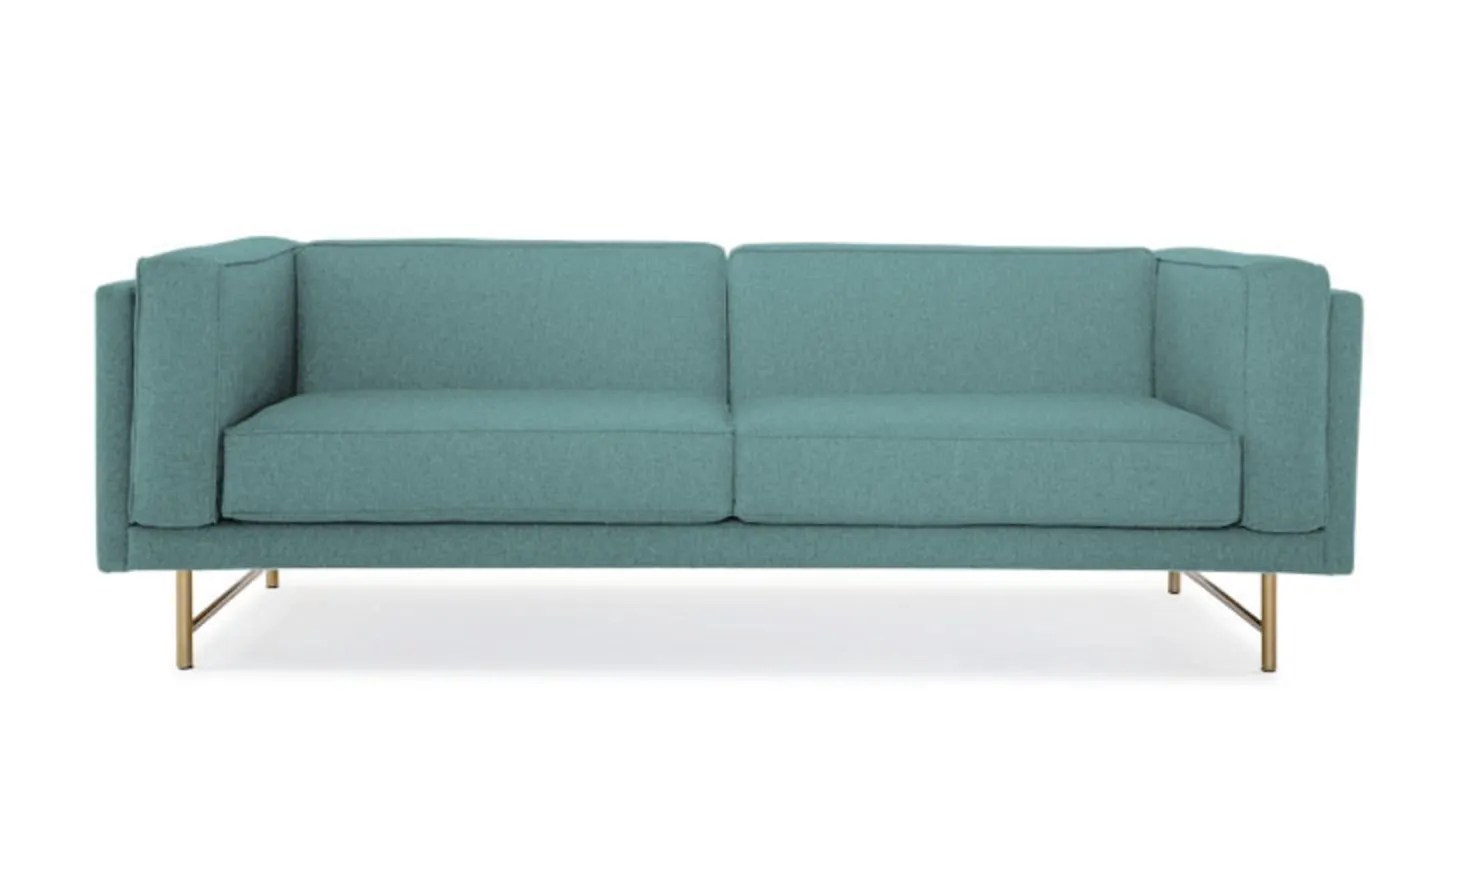 Hudson Sofa Collection Reviews Reviewed The Most Comfortable Sofas At Joybird Apartment